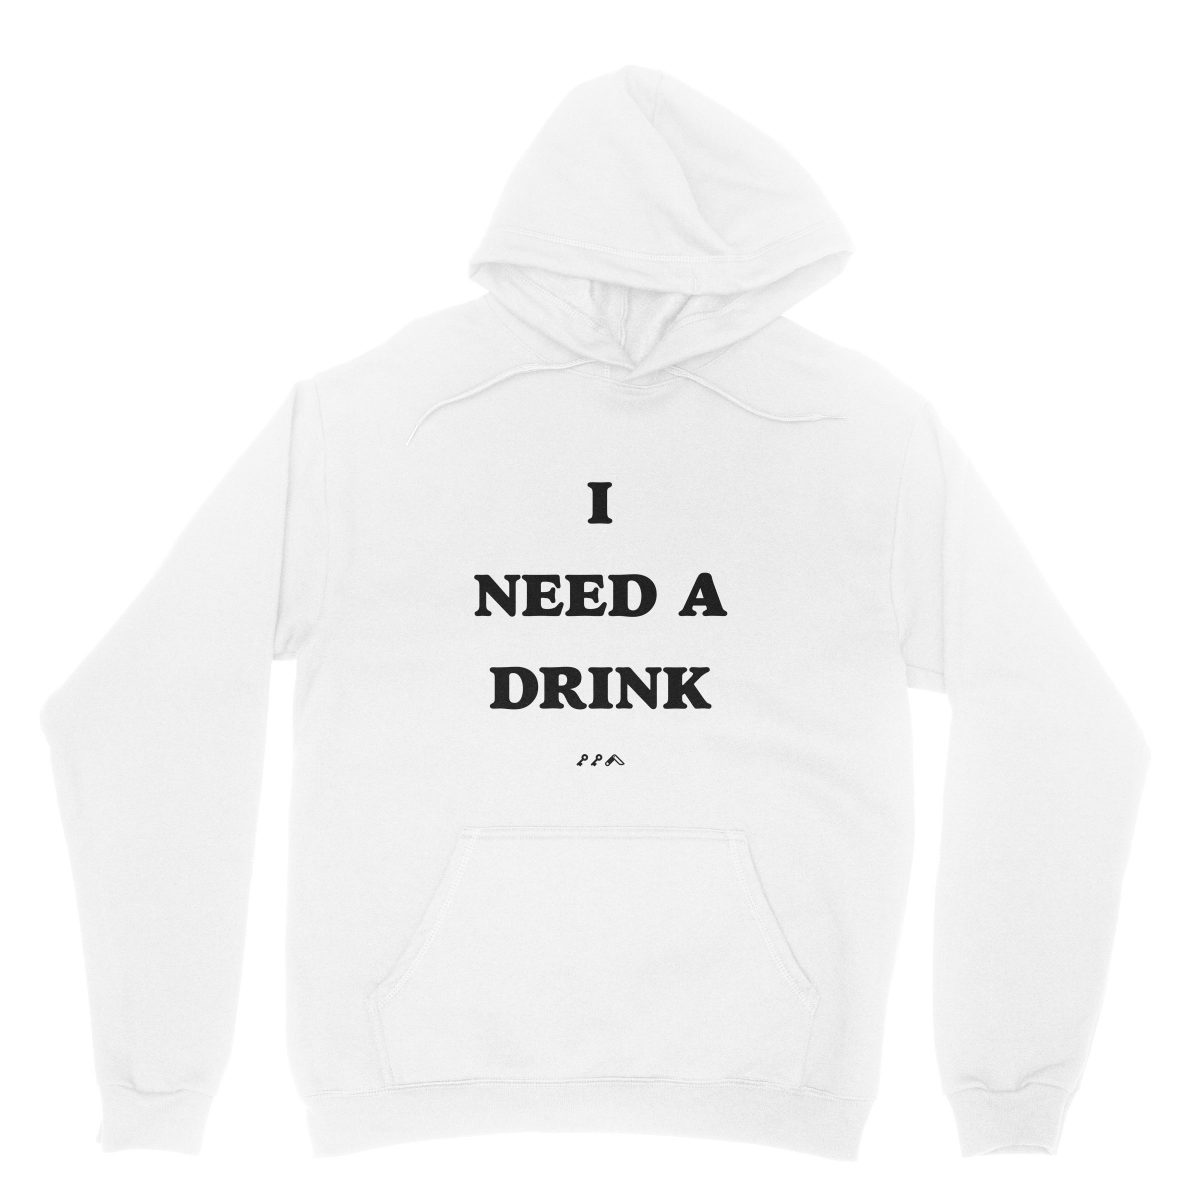 I NEED A DRINK sunday funday drinking hoodie in white